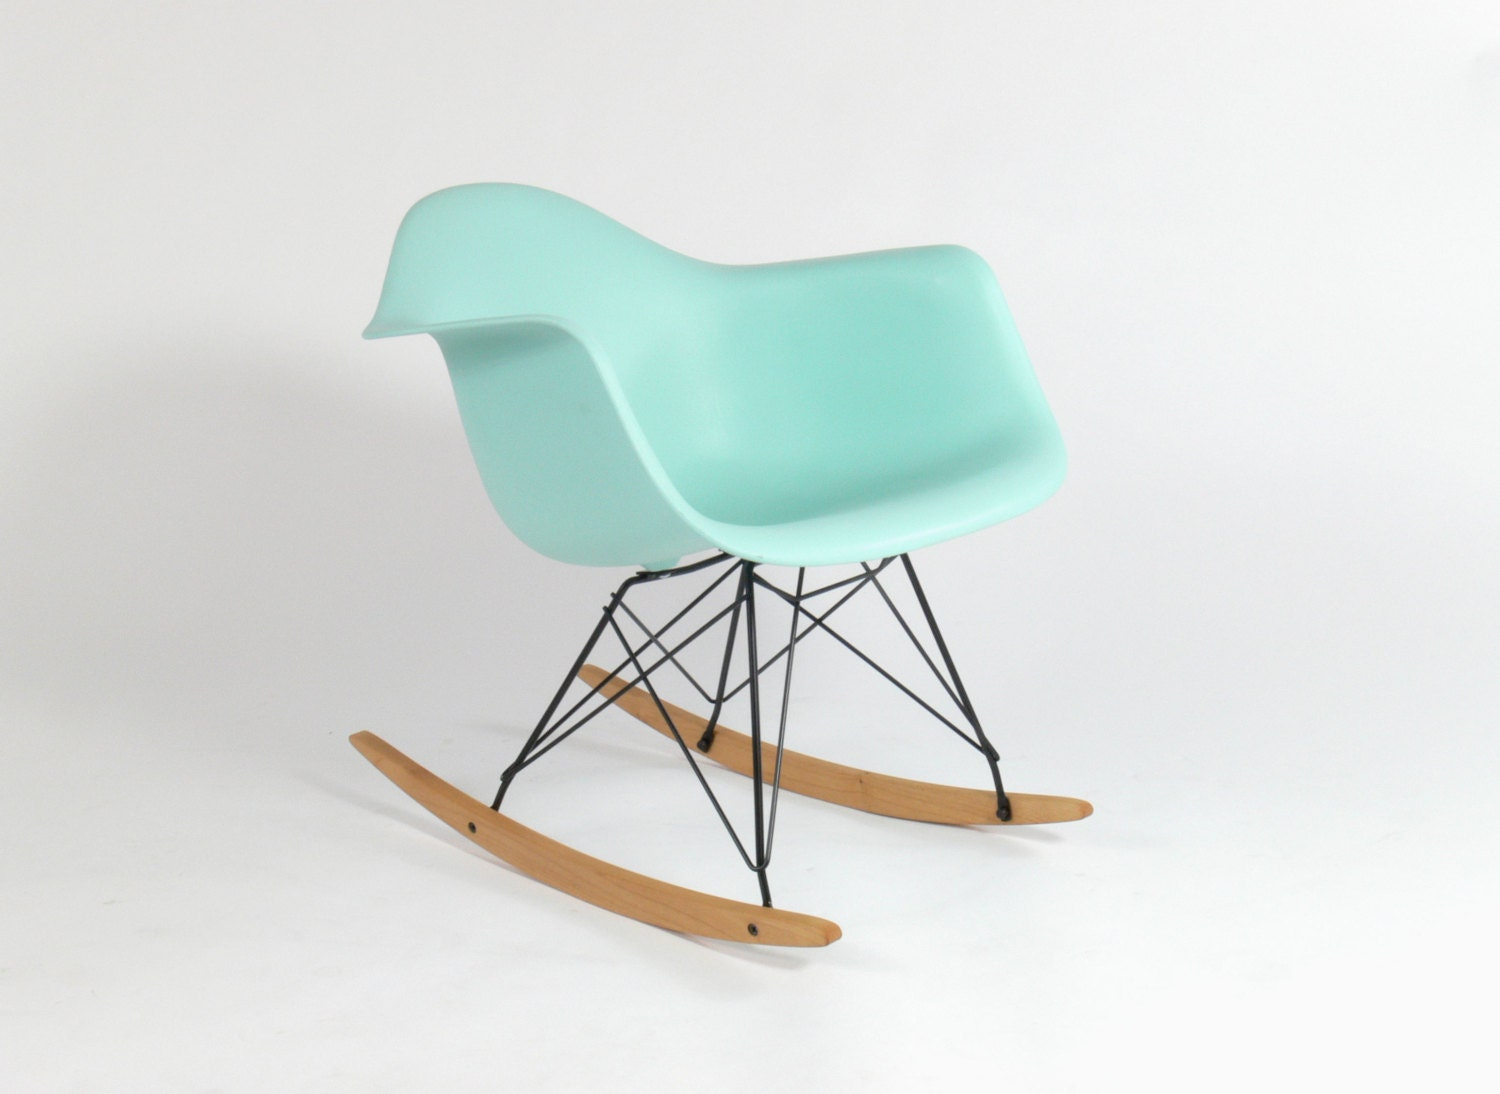 Eames For Herman Miller Molded Plastic Rocking Chair Rar